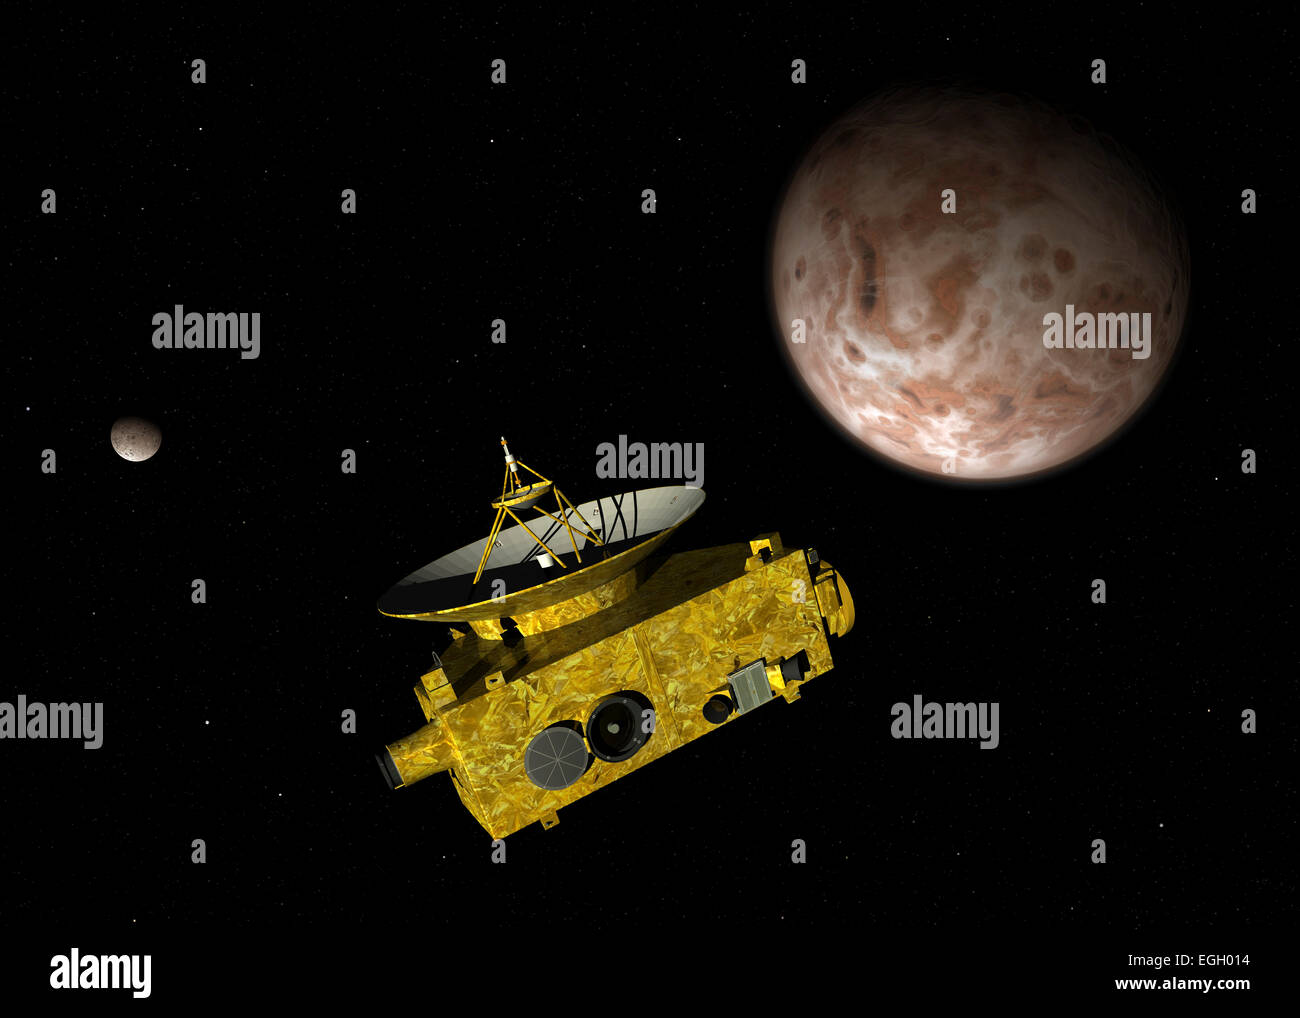 NASA's New Horizons unmanned spacecraft over dwarf planet Pluto and its moon Charon. New Horizons has been en route - Stock Image